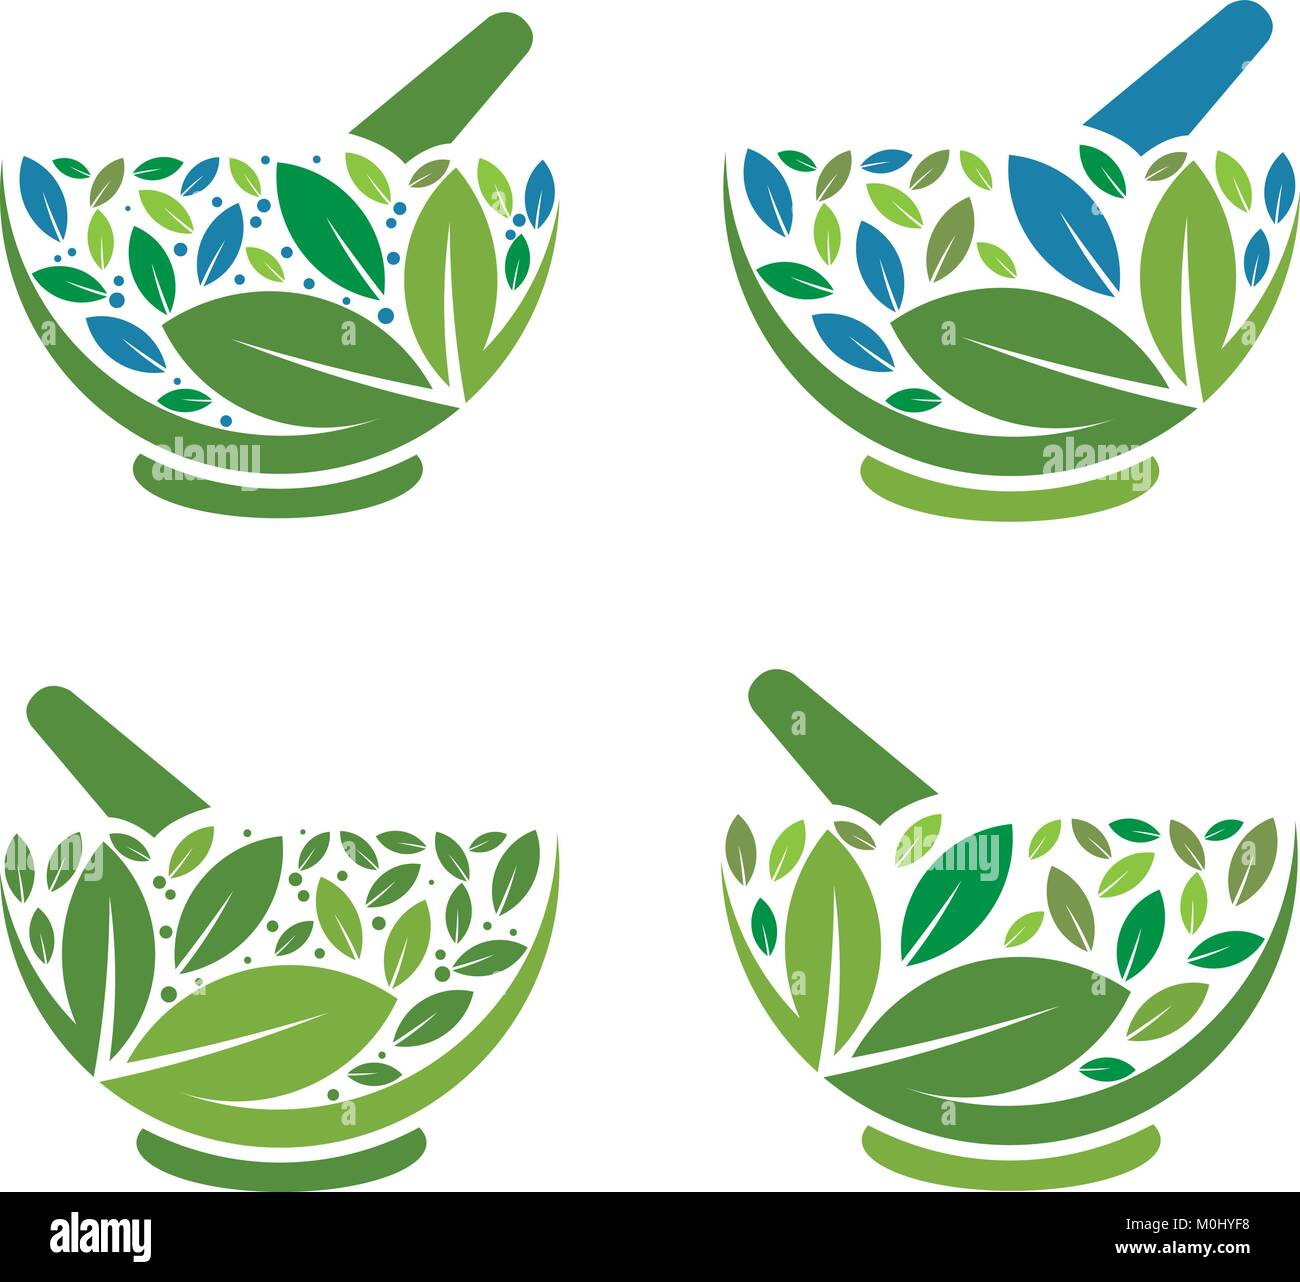 Illustration concept of green leaf as a mortar and pestle white background. - Stock Vector